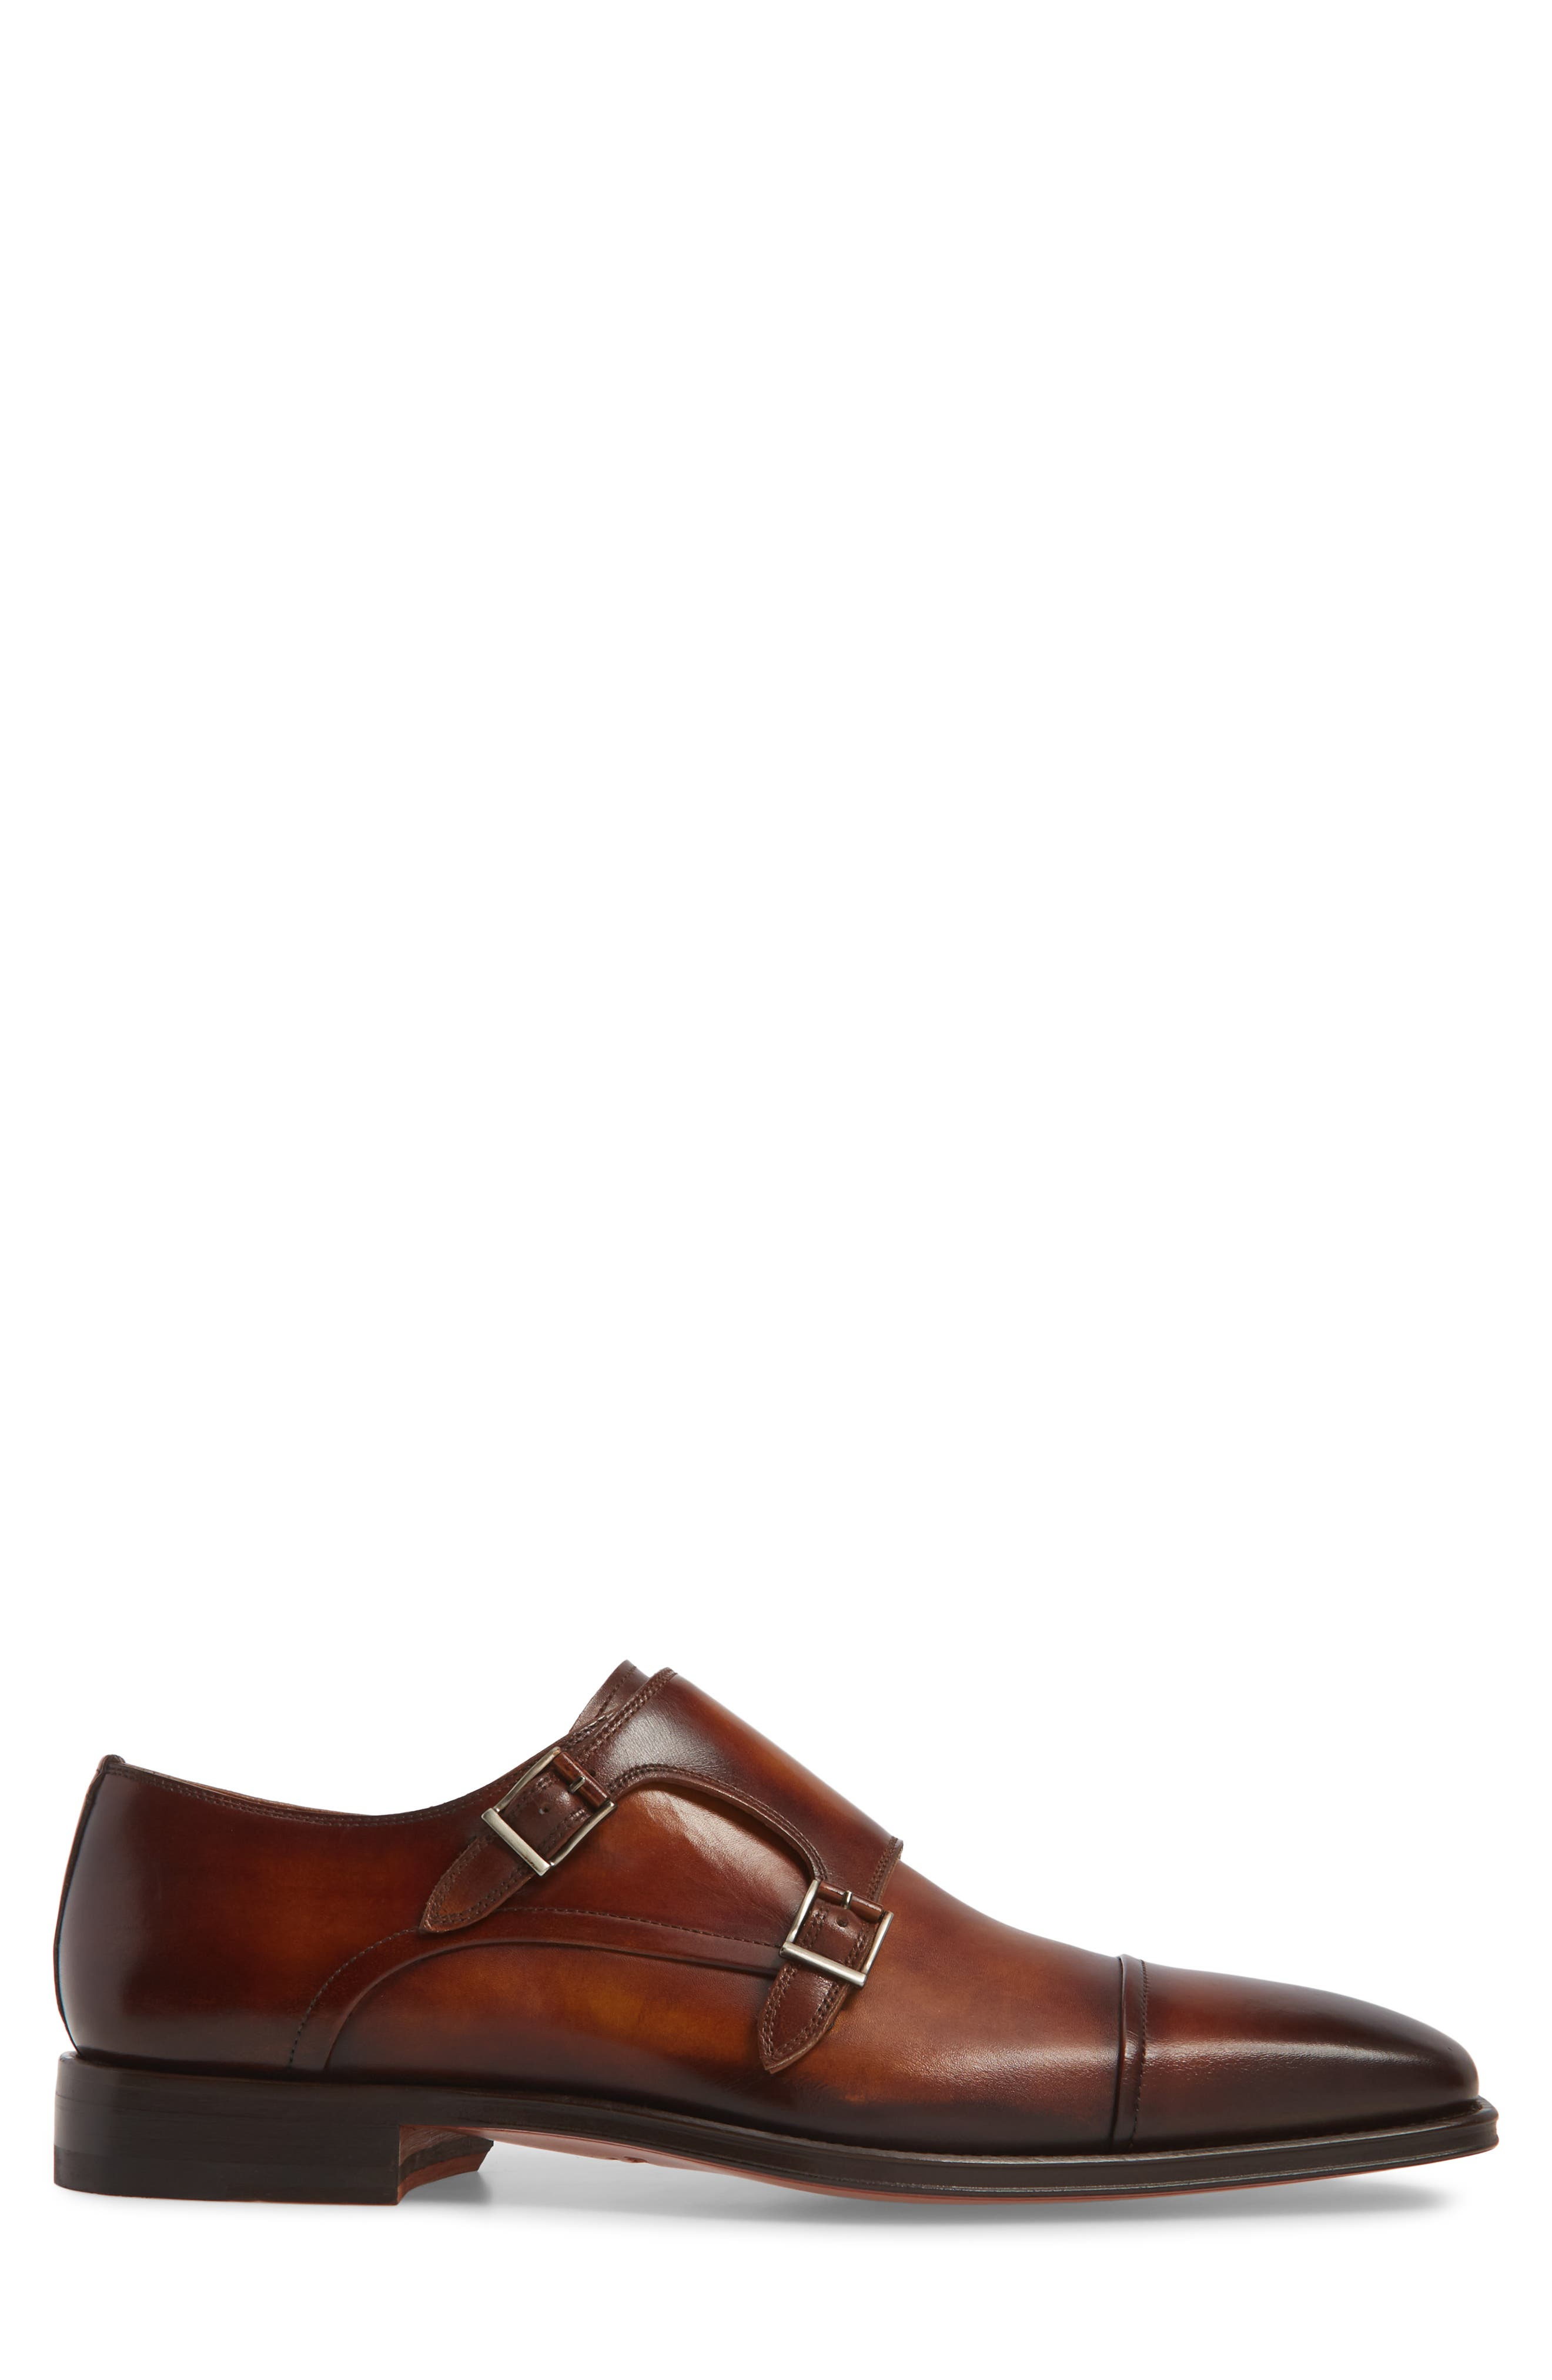 Silvio Double Monk Strap Shoe,                             Alternate thumbnail 3, color,                             230